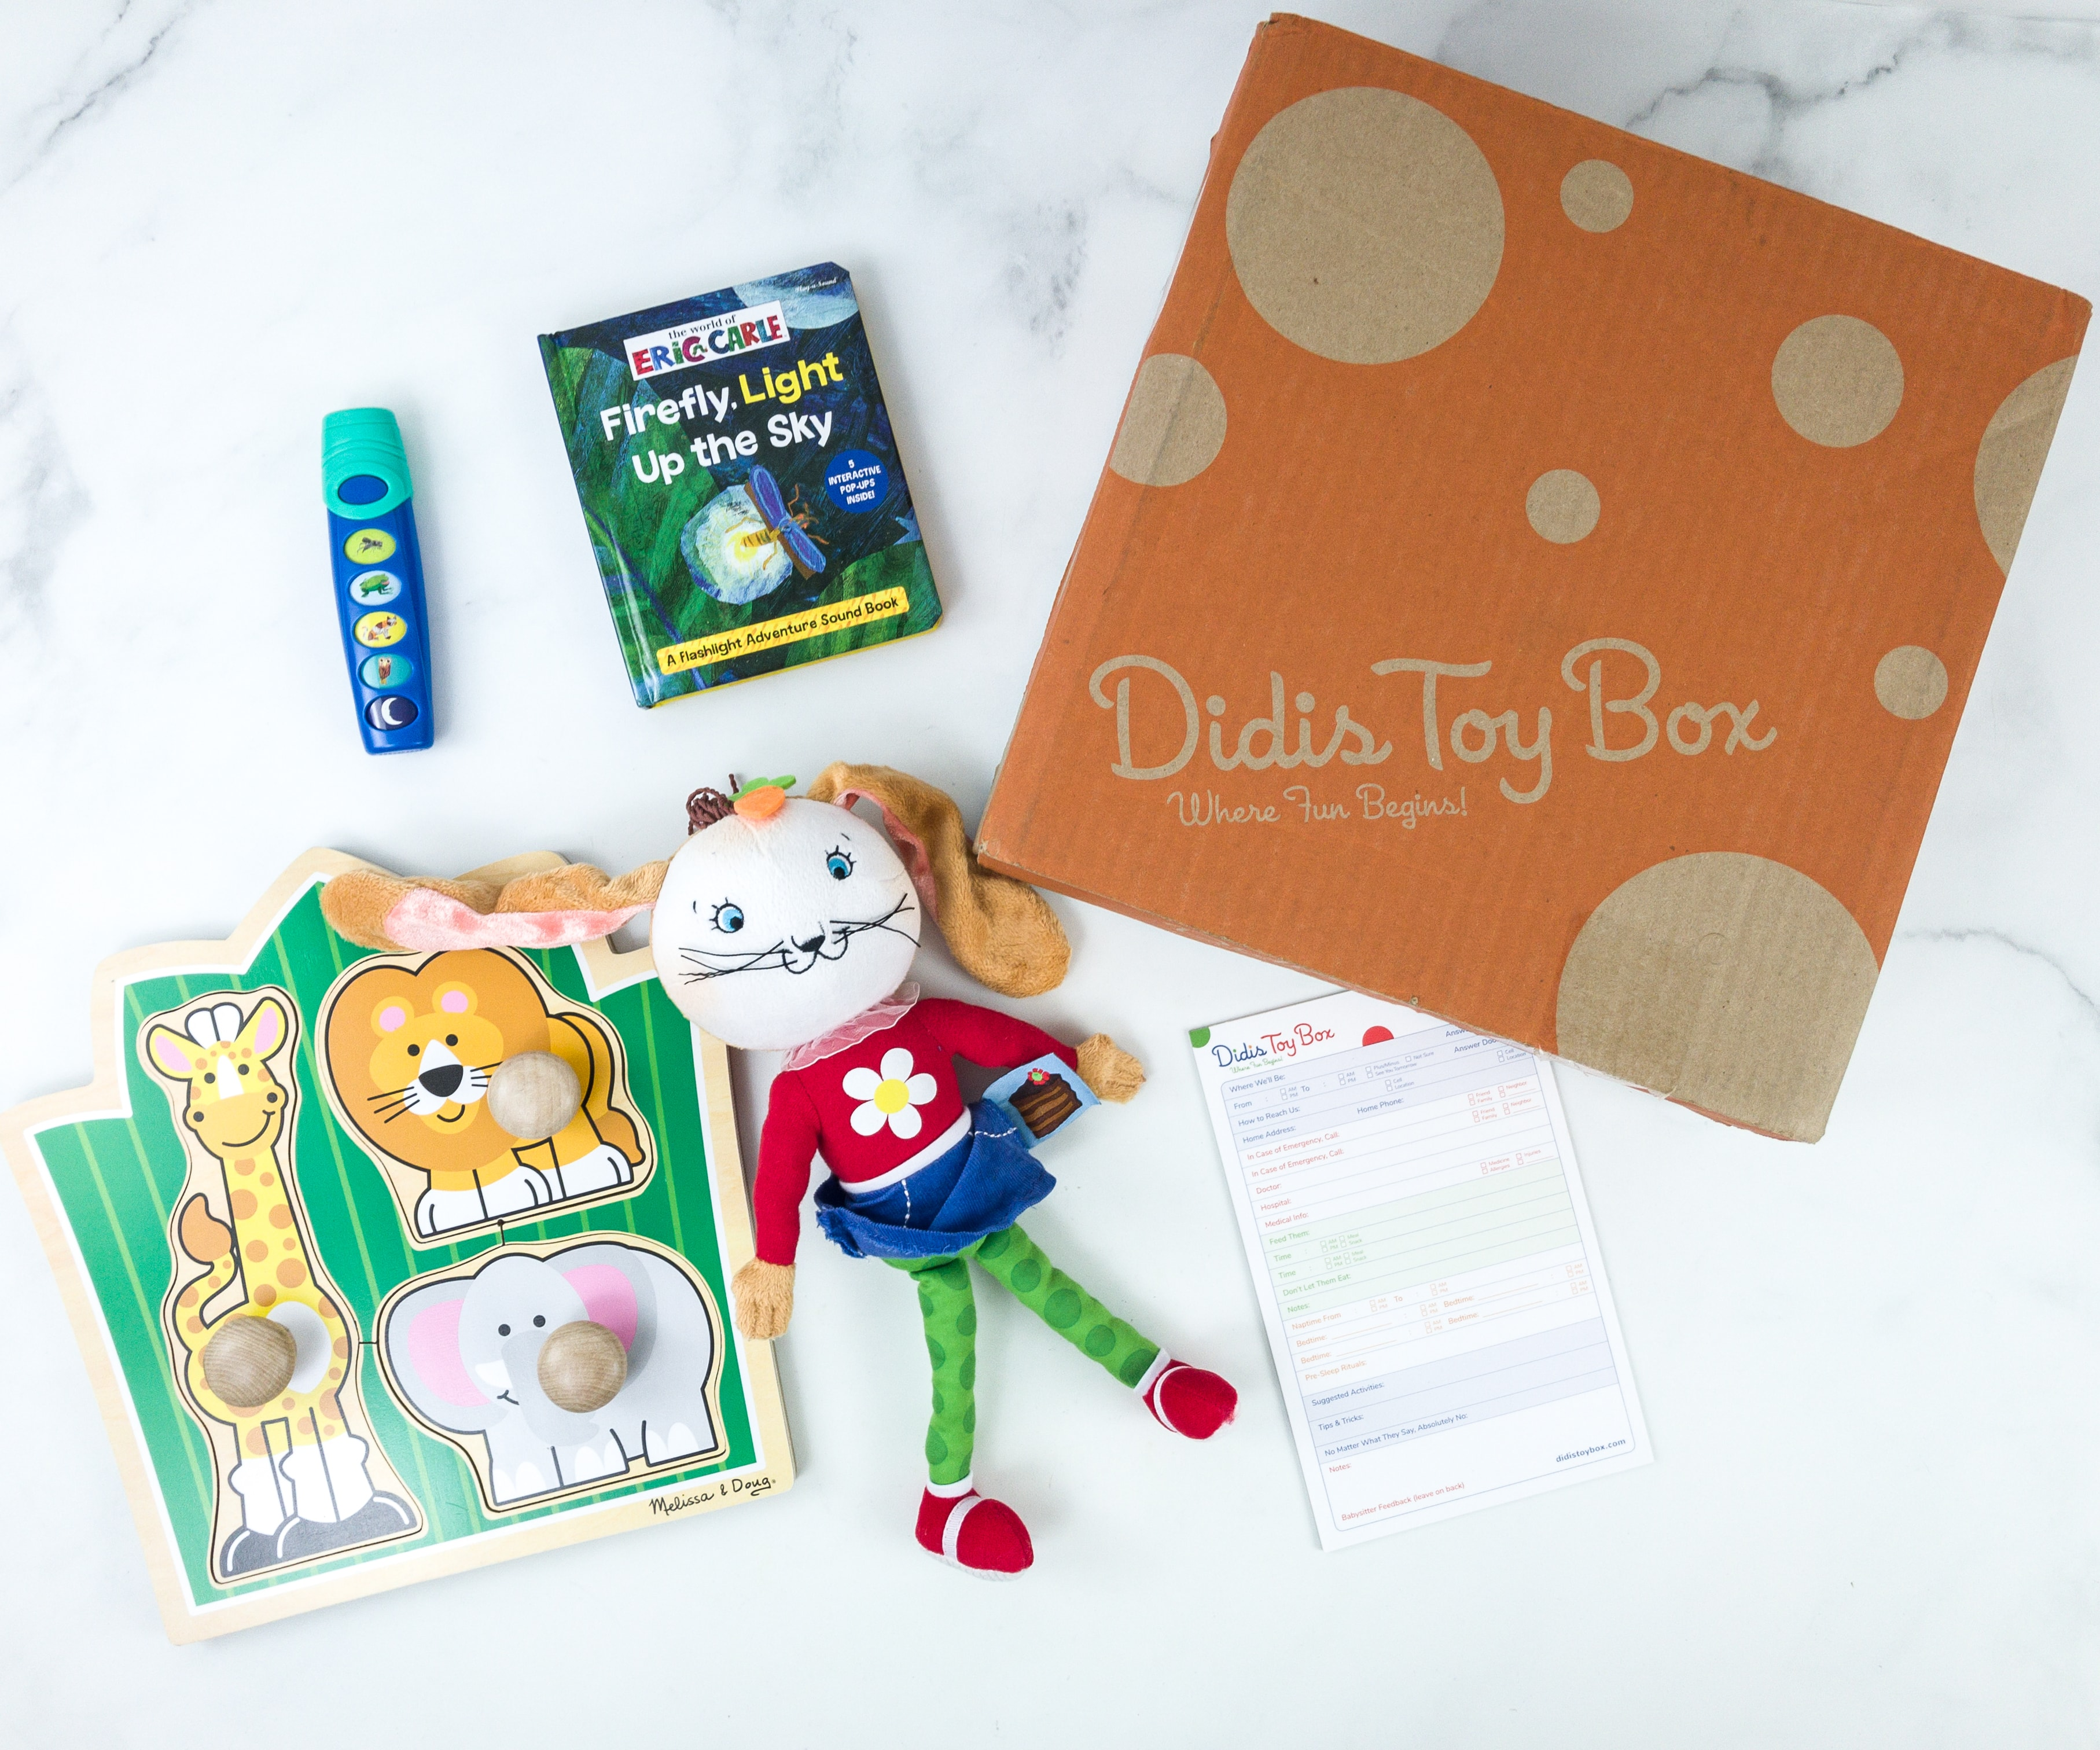 Didis Toy Box September 2019 Subscription Box Review & Coupon